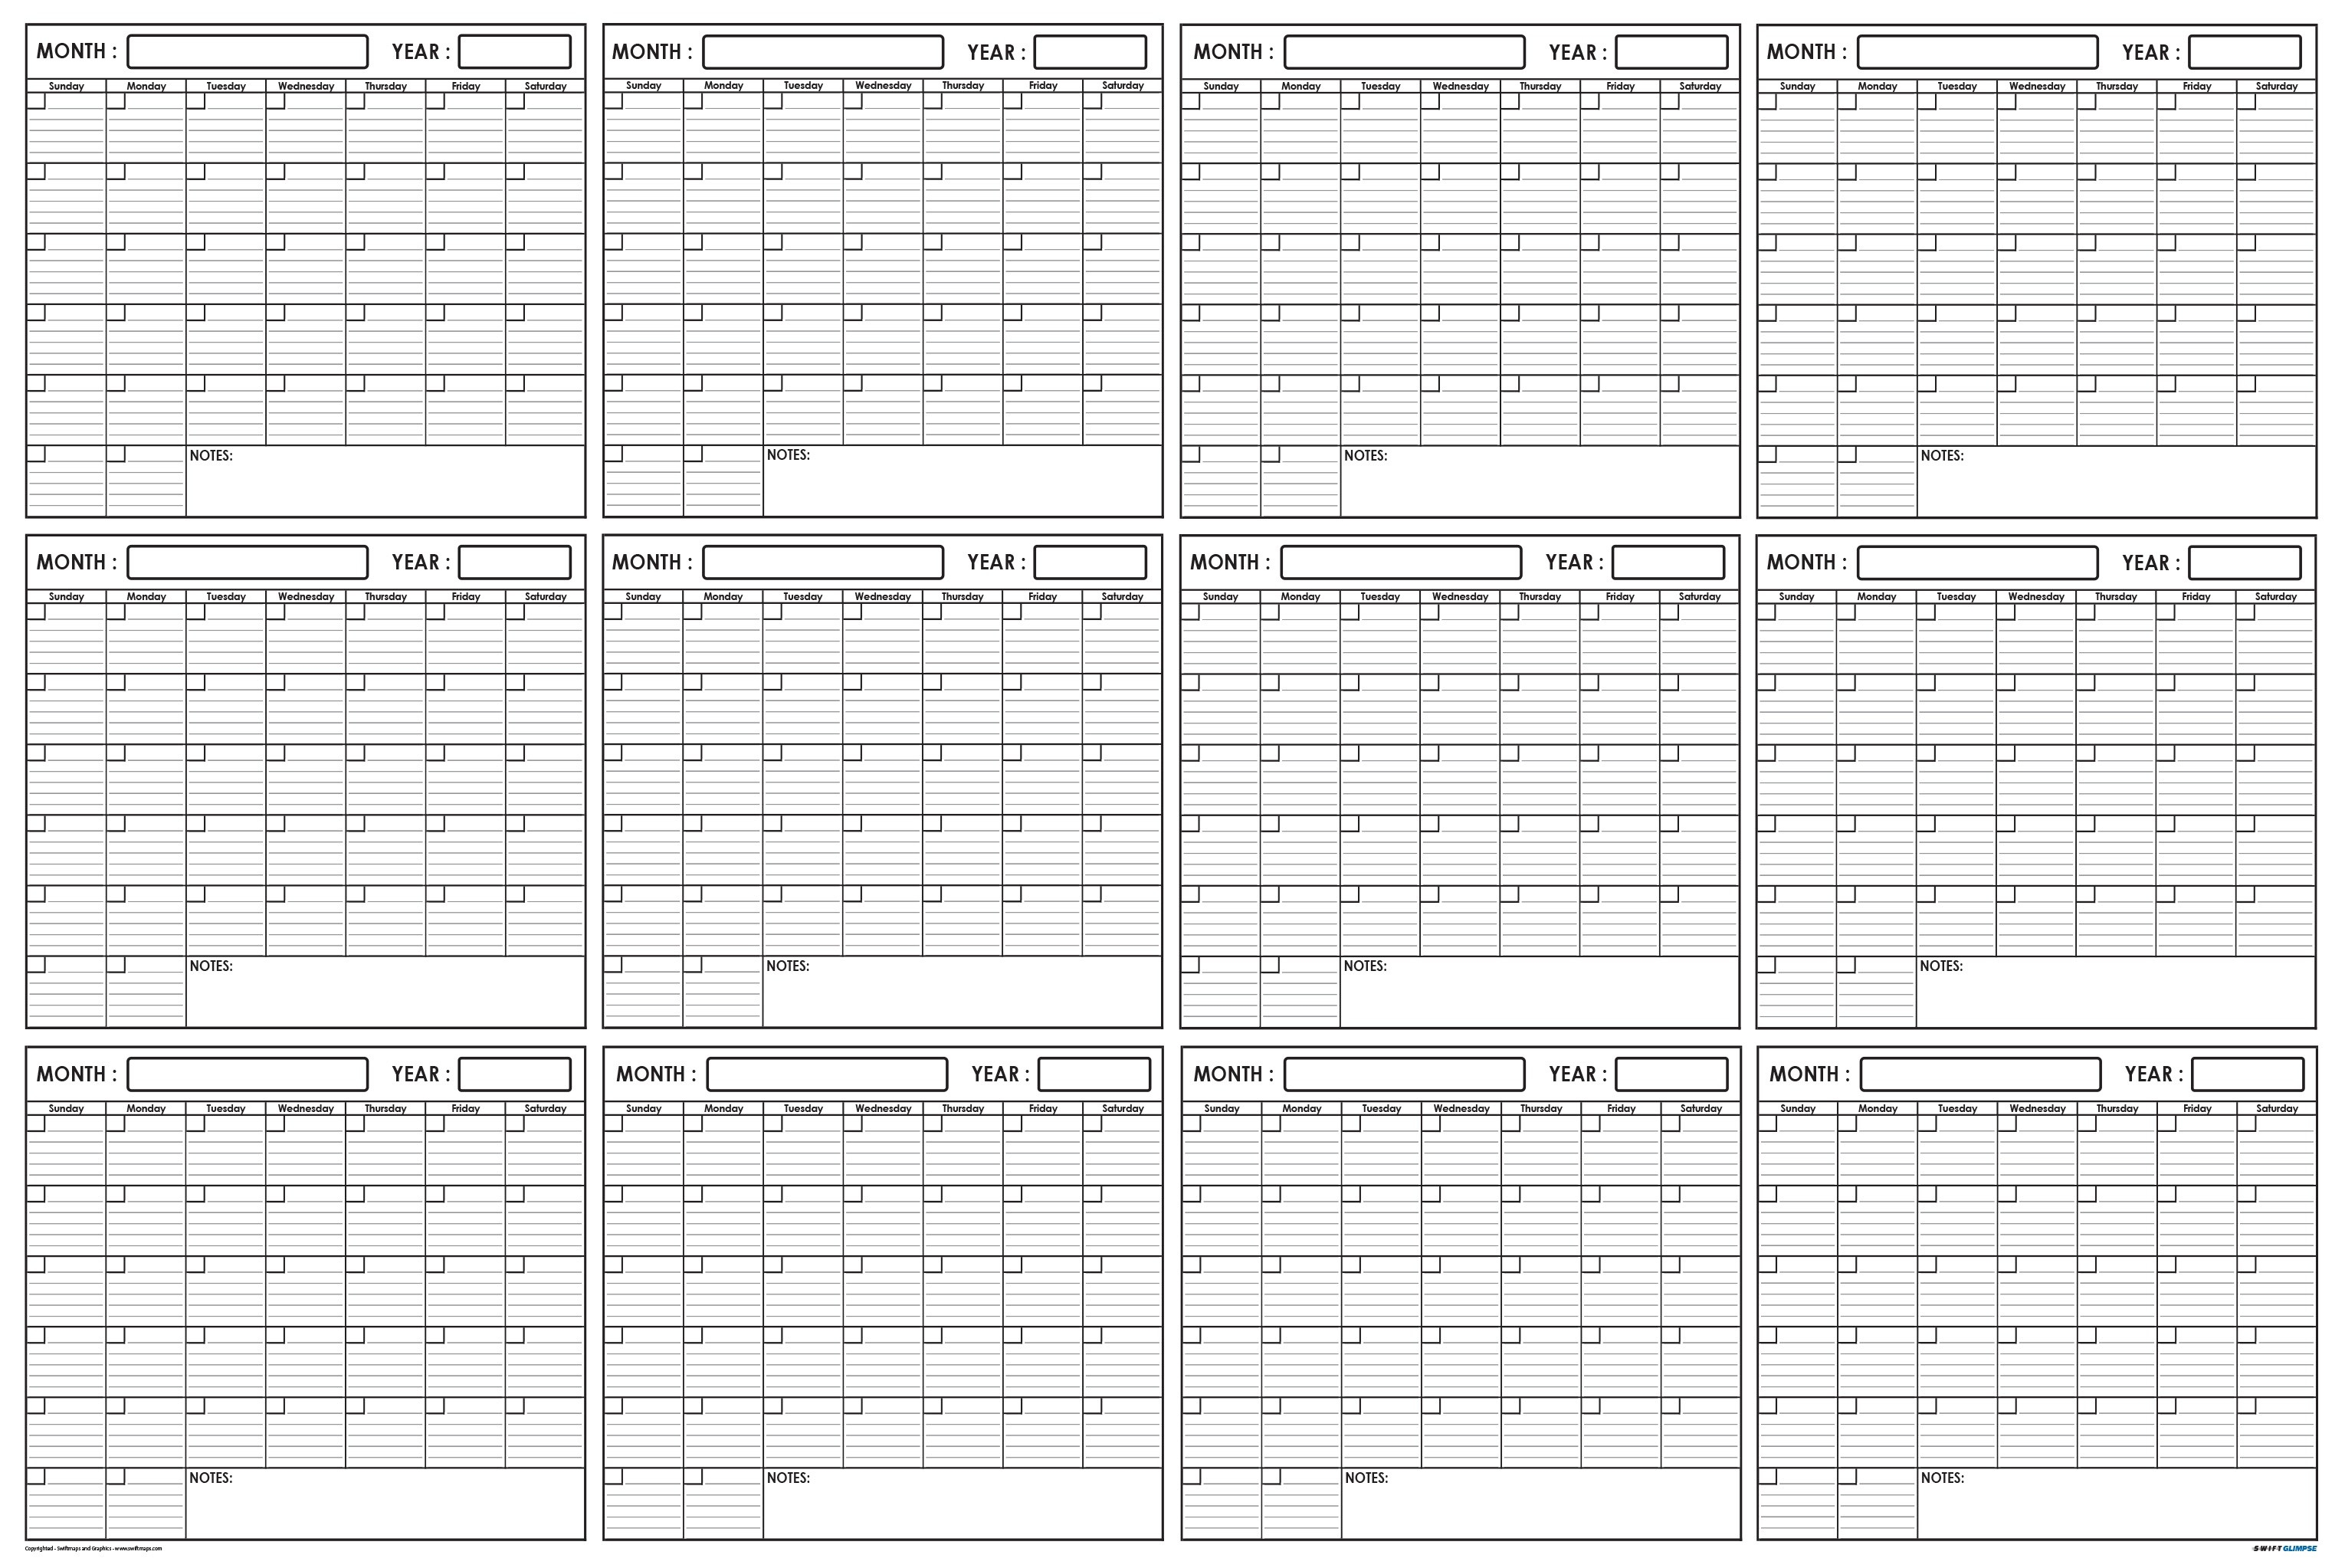 Xlarge Yearly Wet & Dry Erase Blank Reusable Undated Wall Calendar Planner  For Office Academic Home 12-Month Project Calendar-Beach Calendar With Blanks